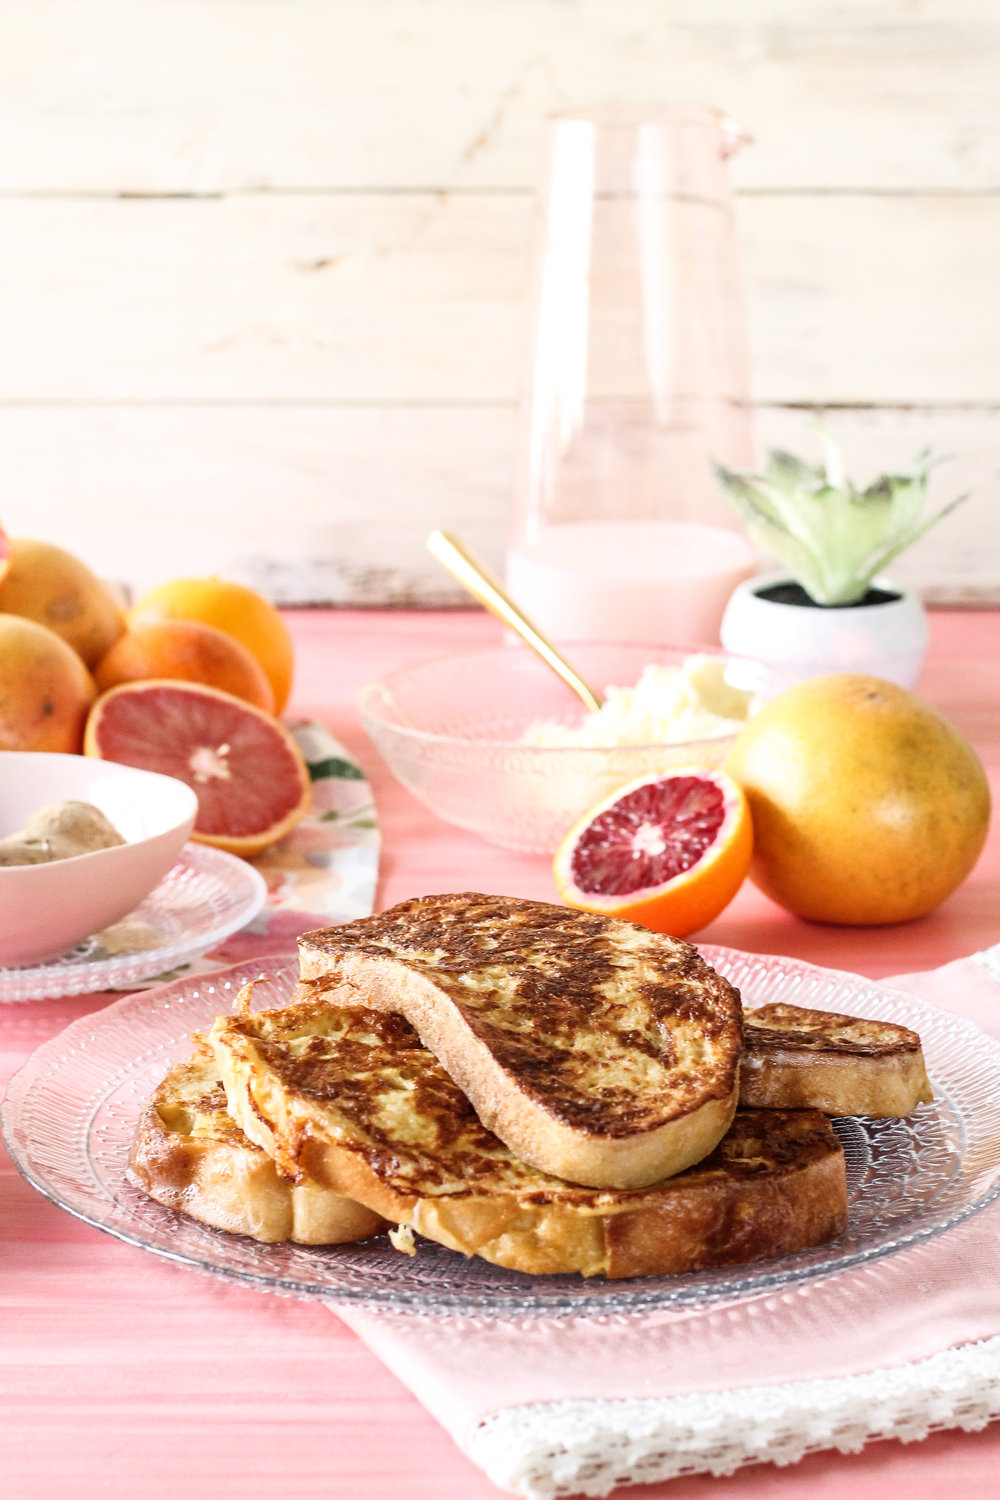 PINK CITRUS FRENCH TOAST IS THE PERFECT WAY TO CELEBRATE CITRUS SEASON!  [ www.pedanticfoodie.com ]